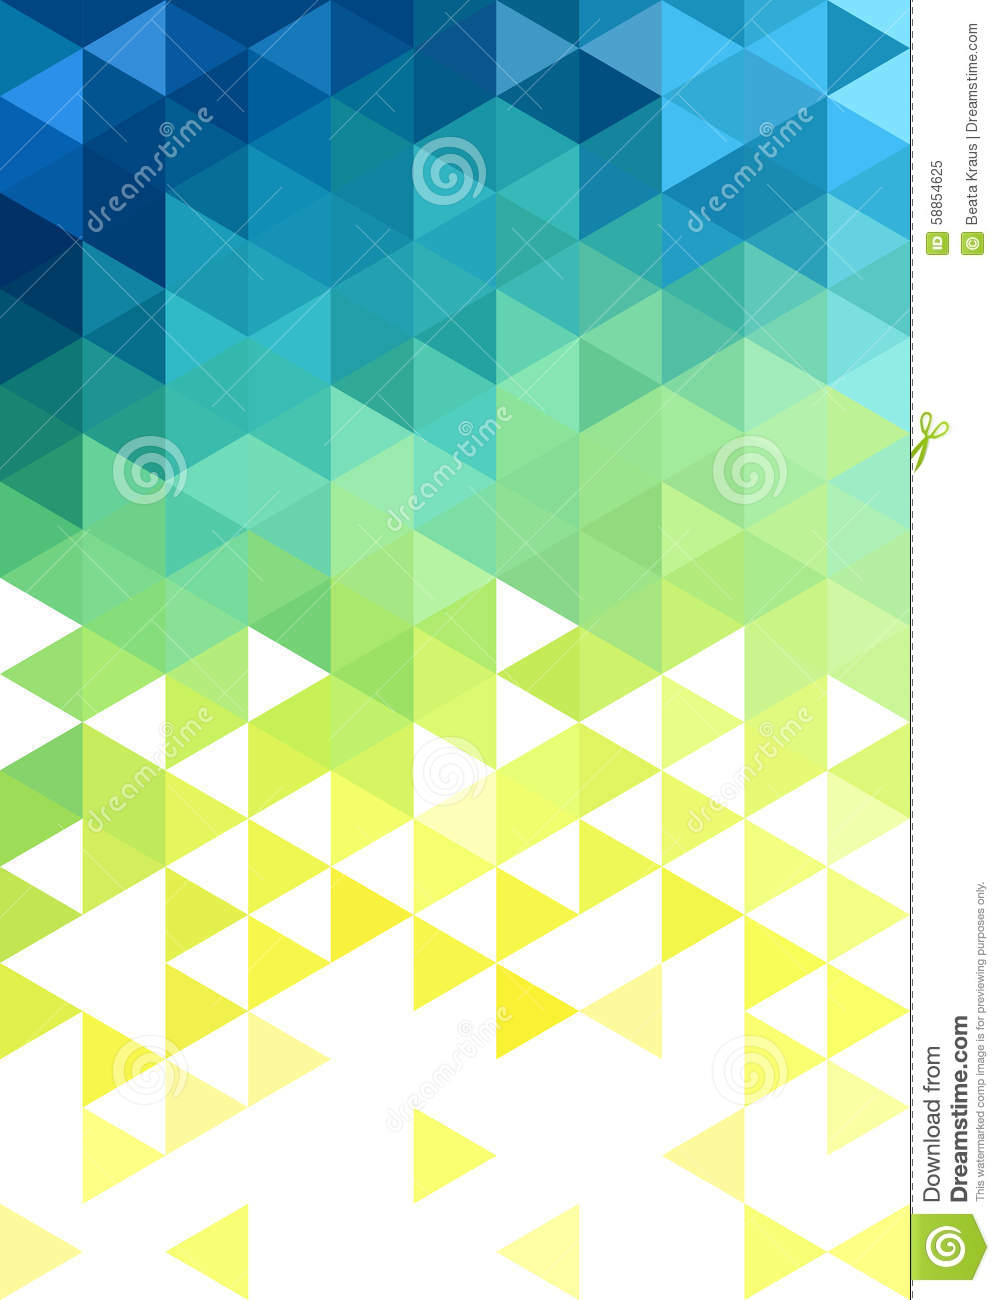 Abstract Low Poly Background, Vector Stock Vector - Image